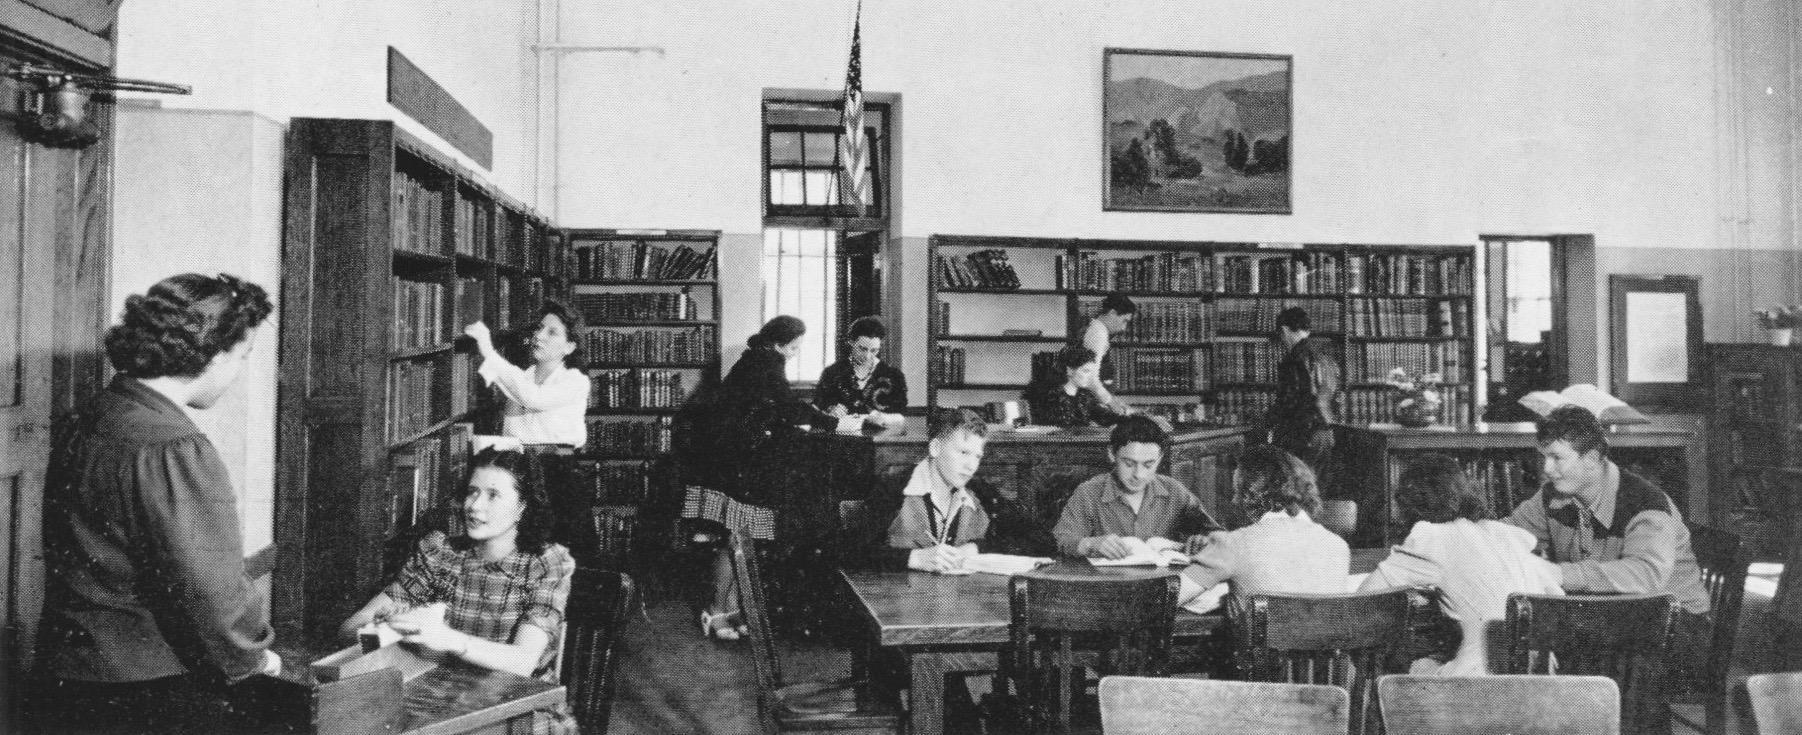 Library 1940s